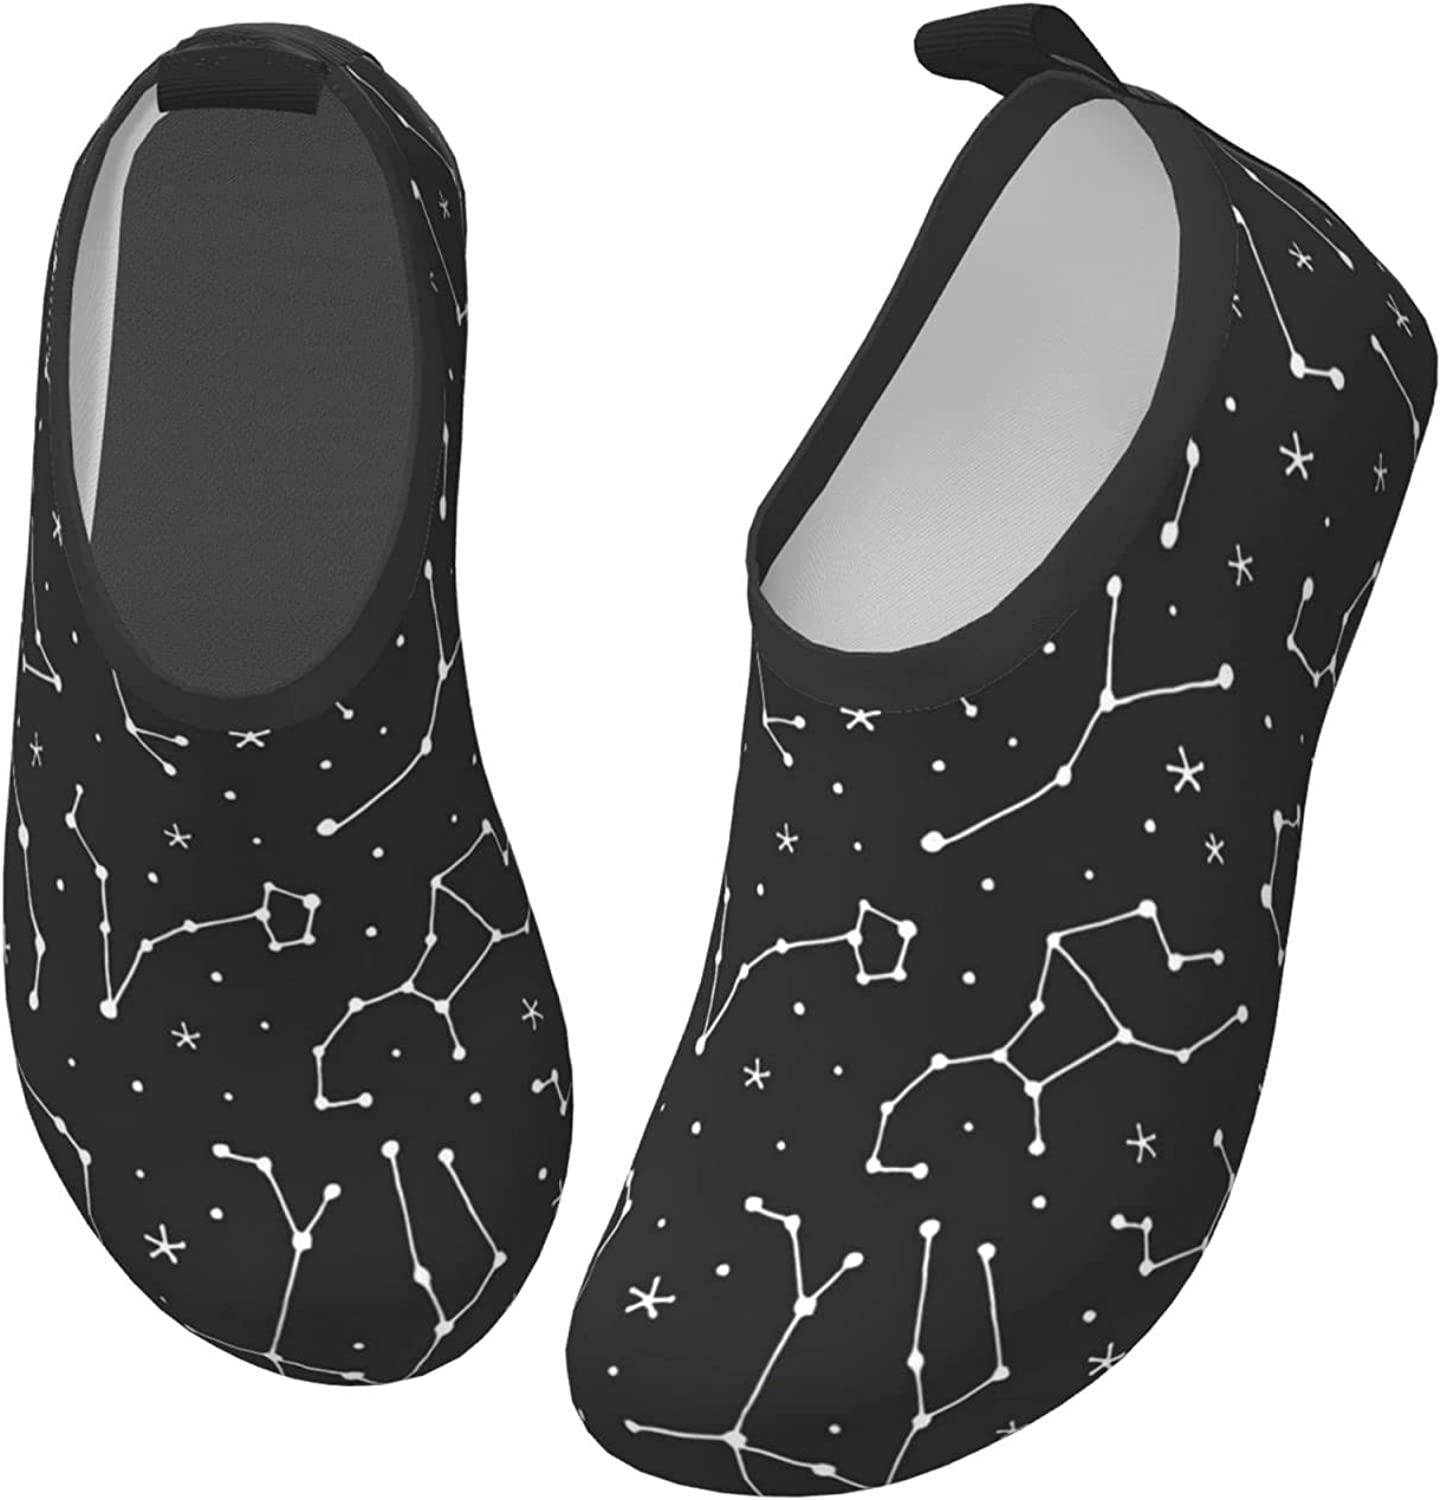 Fairy UMI Mysterious Constellation Toddler Water Shoes Non-Slip Aqua Sports Shoes Barefoot Swim Shoes Beach Surf for Boys Girls